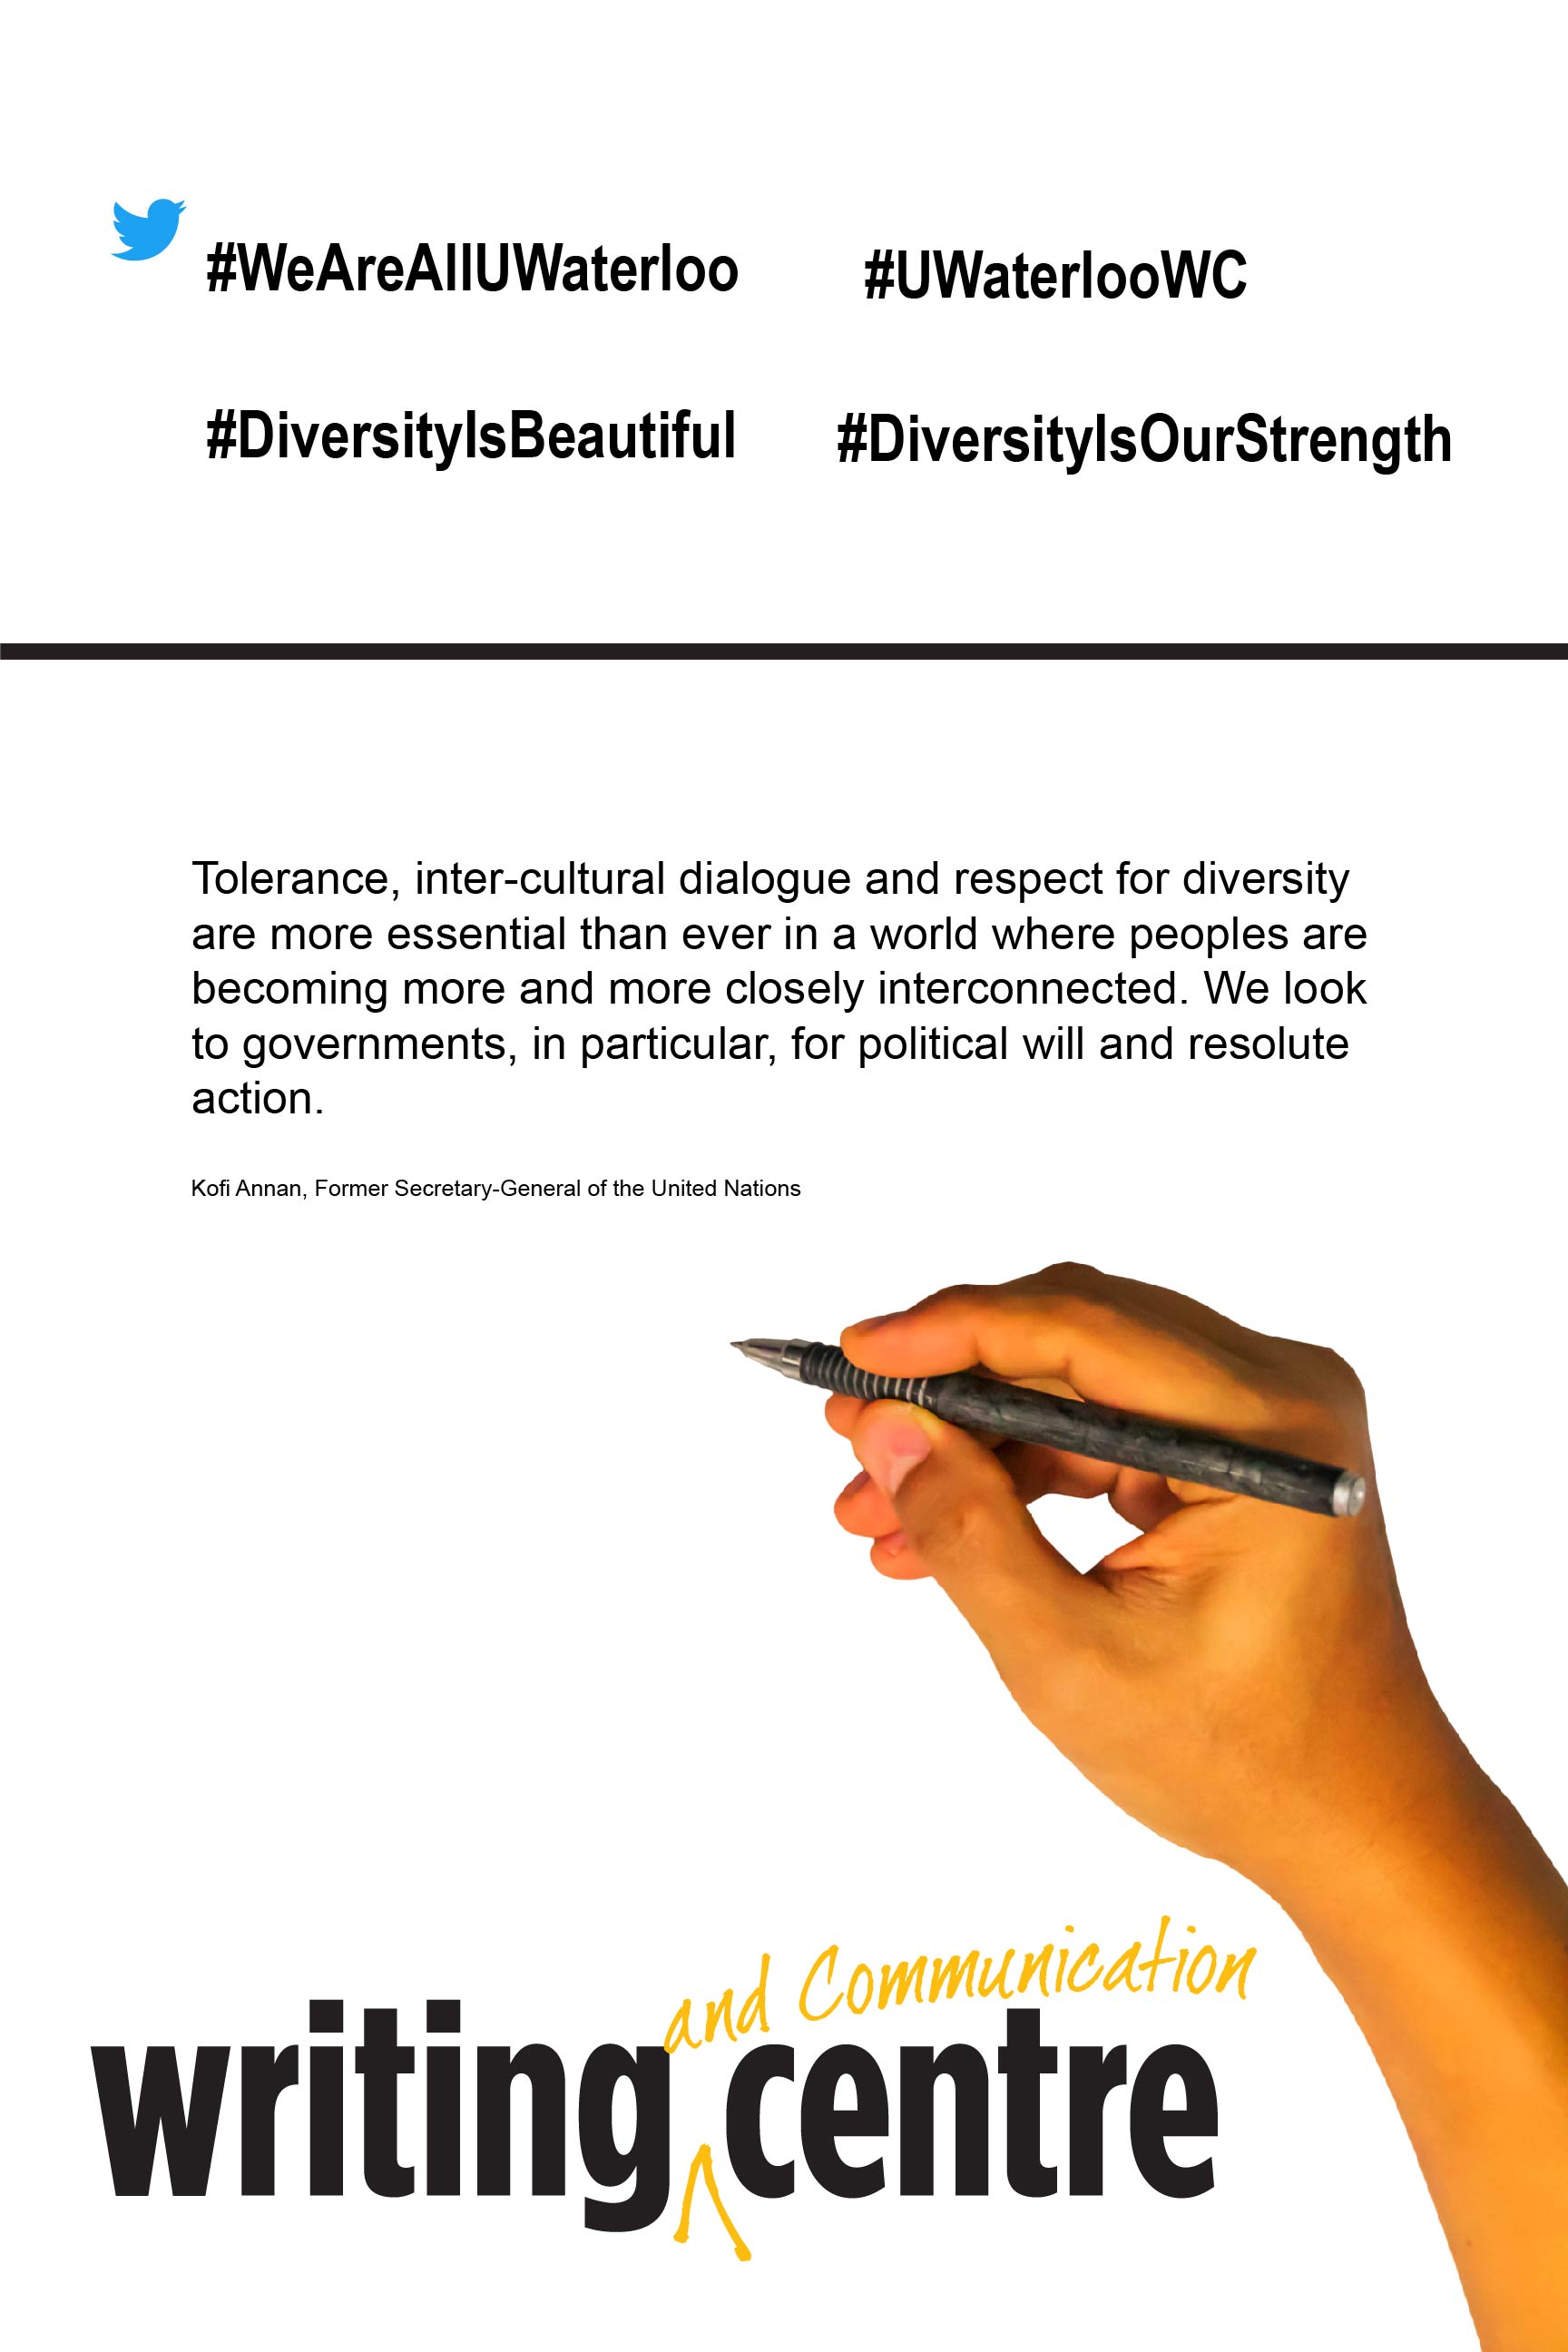 Quotation about tolerance and diversity by Kofi Annan, Former Secretary-General of the United Nations